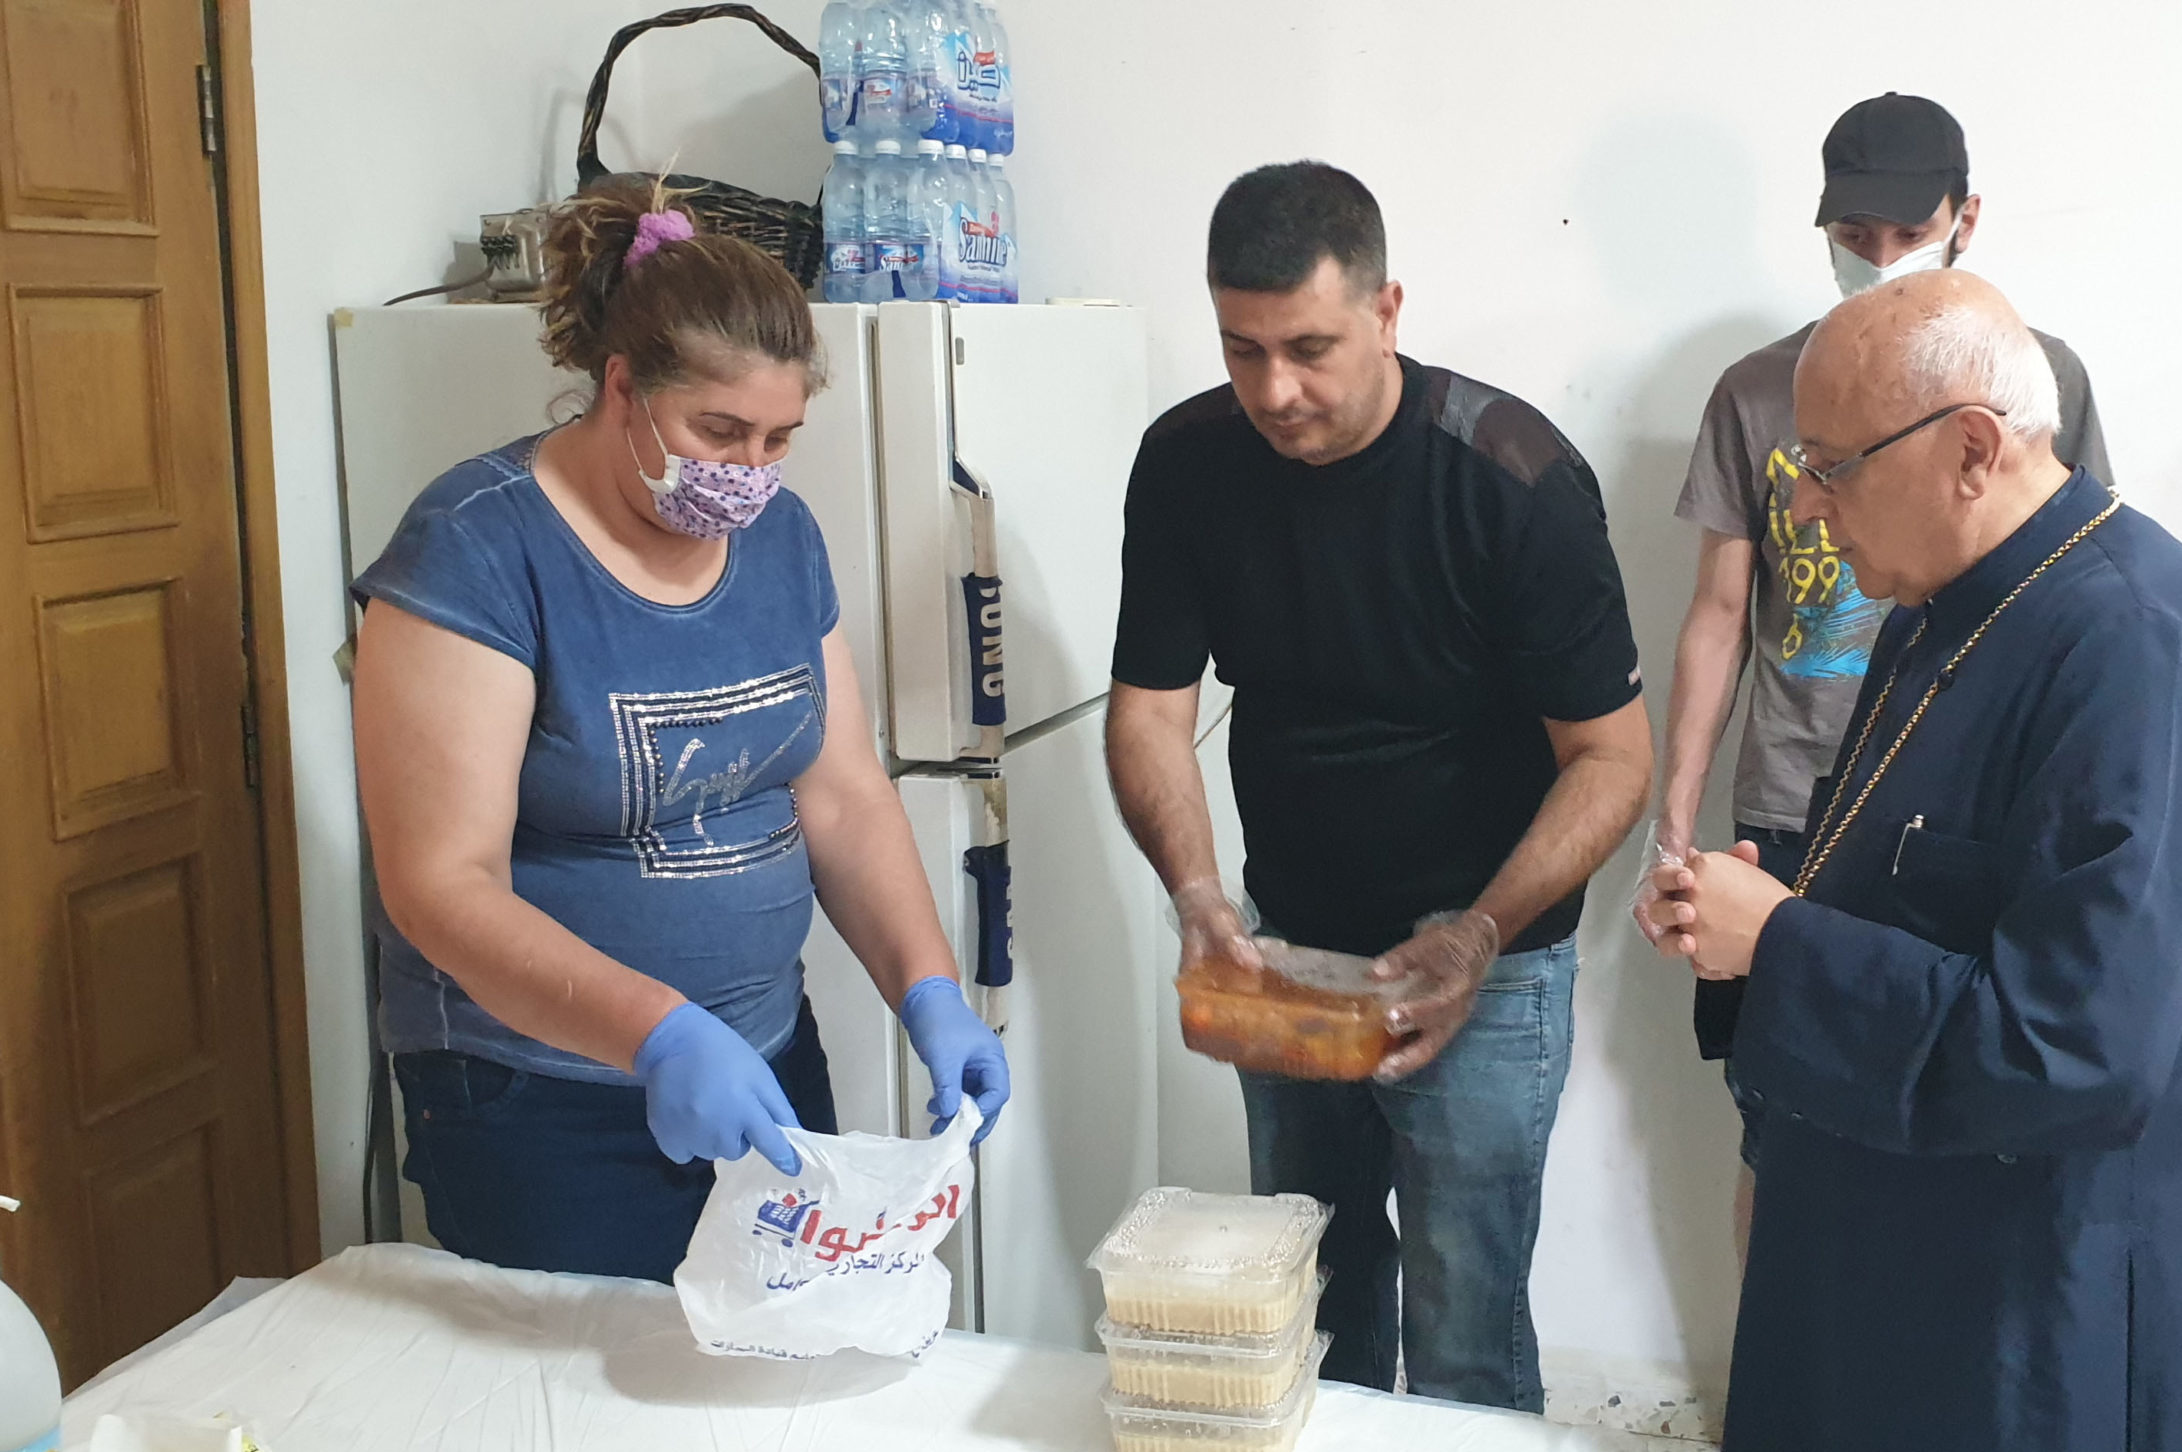 Preparing to distribute food to Syrian refugees, observing Lebanese COVID-19 safety guidance.